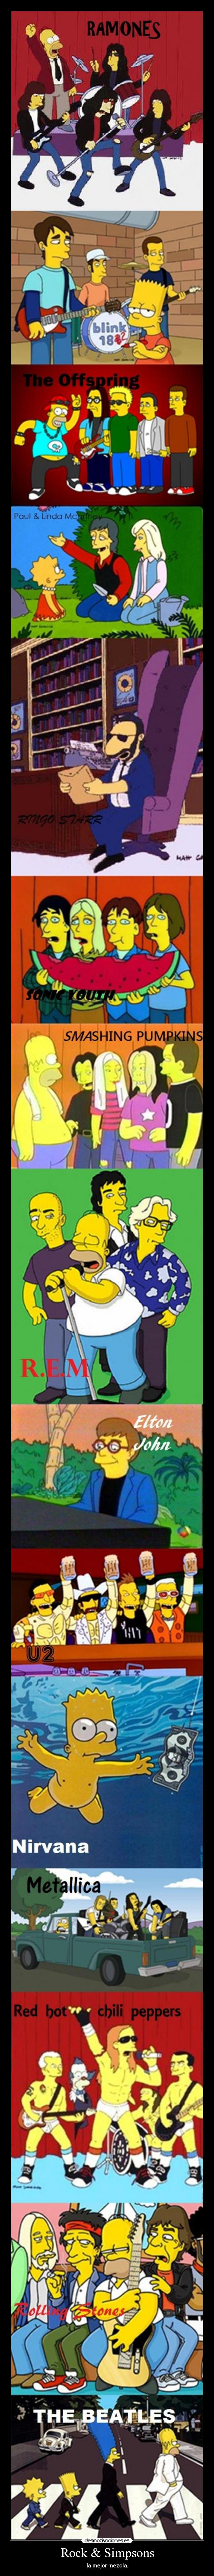 carteles rock simpsons simpson mezcla ramones blink rock offspring desmotivaciones